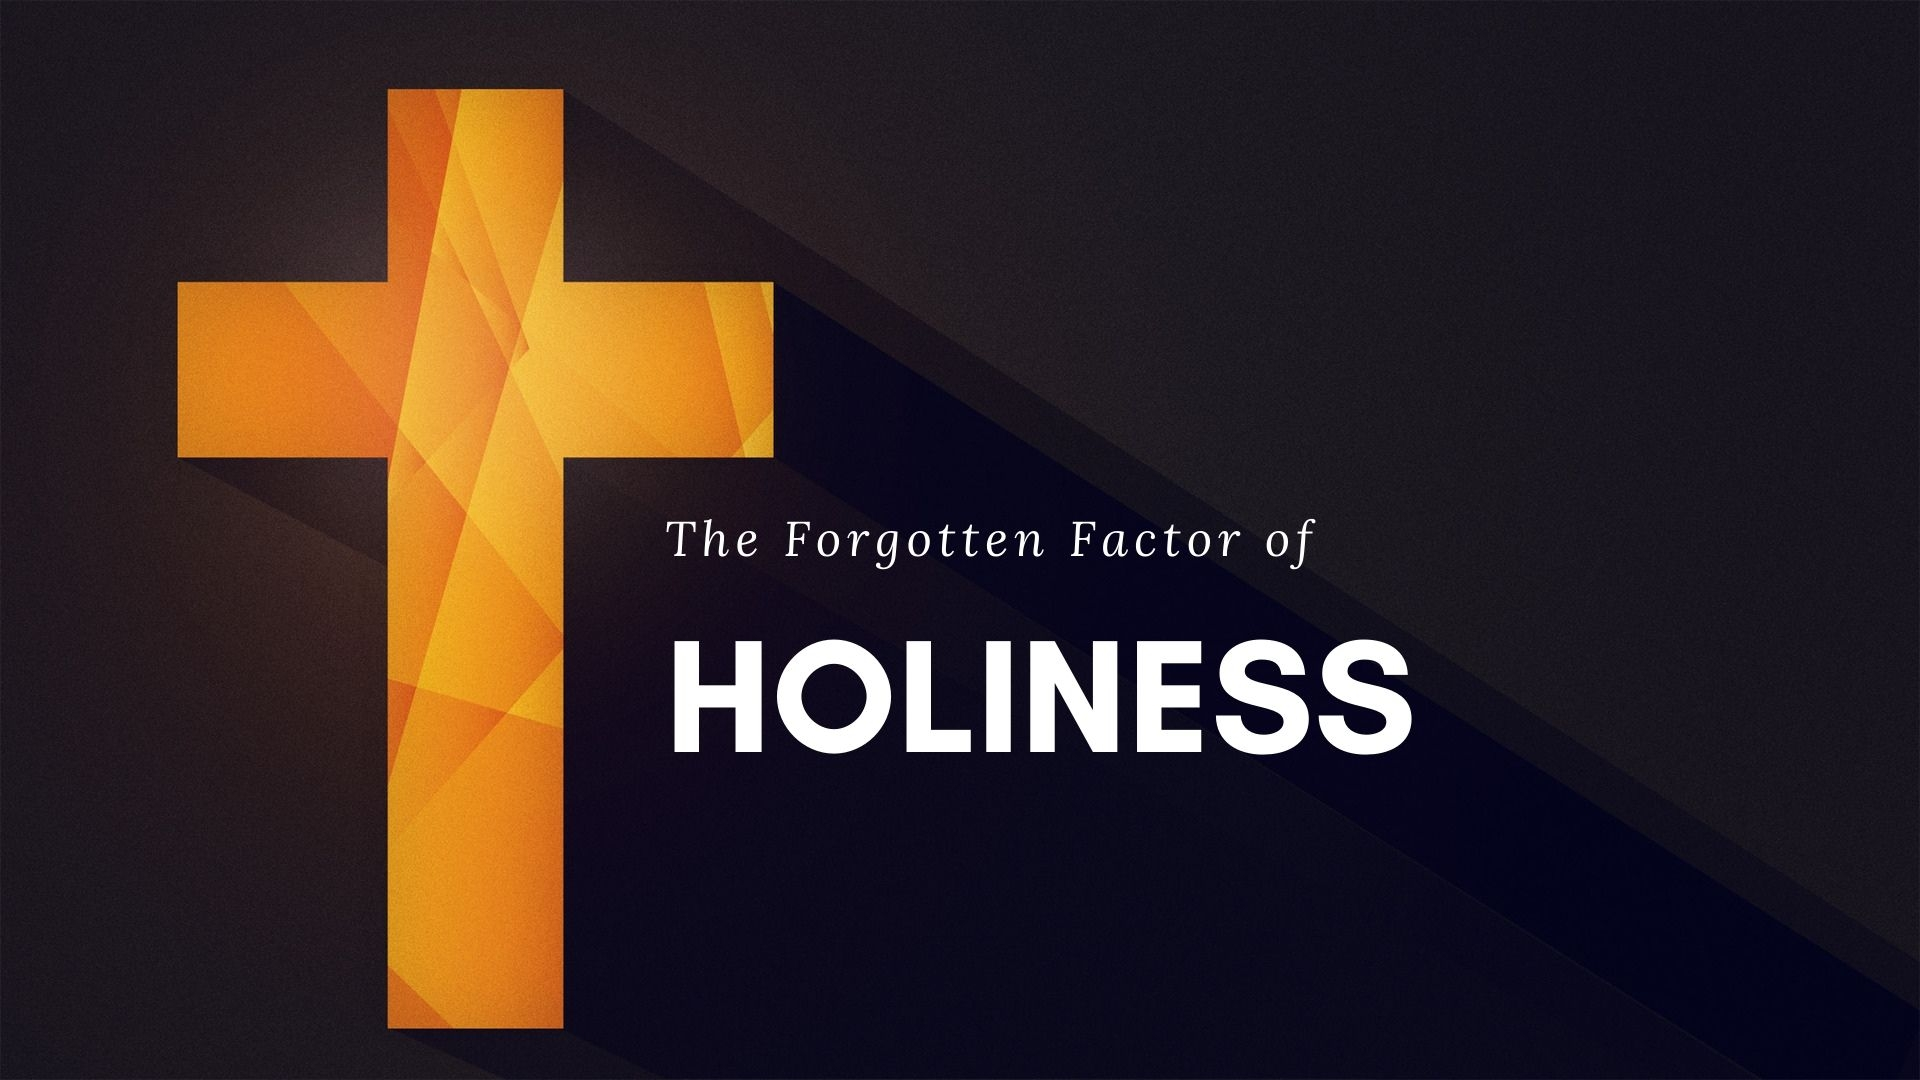 Thursday March 12, 2020 The Forgotten Factor Of Holiness - Bro. Ron Kent